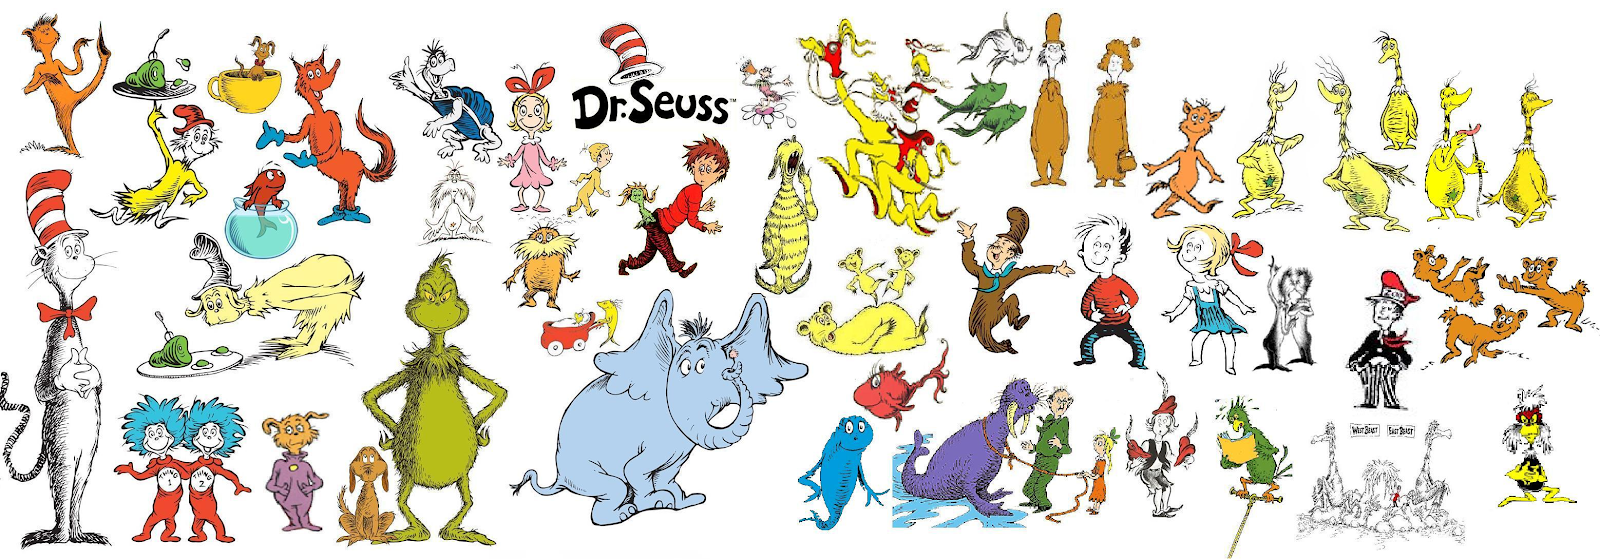 Picture of Dr. Suess characters